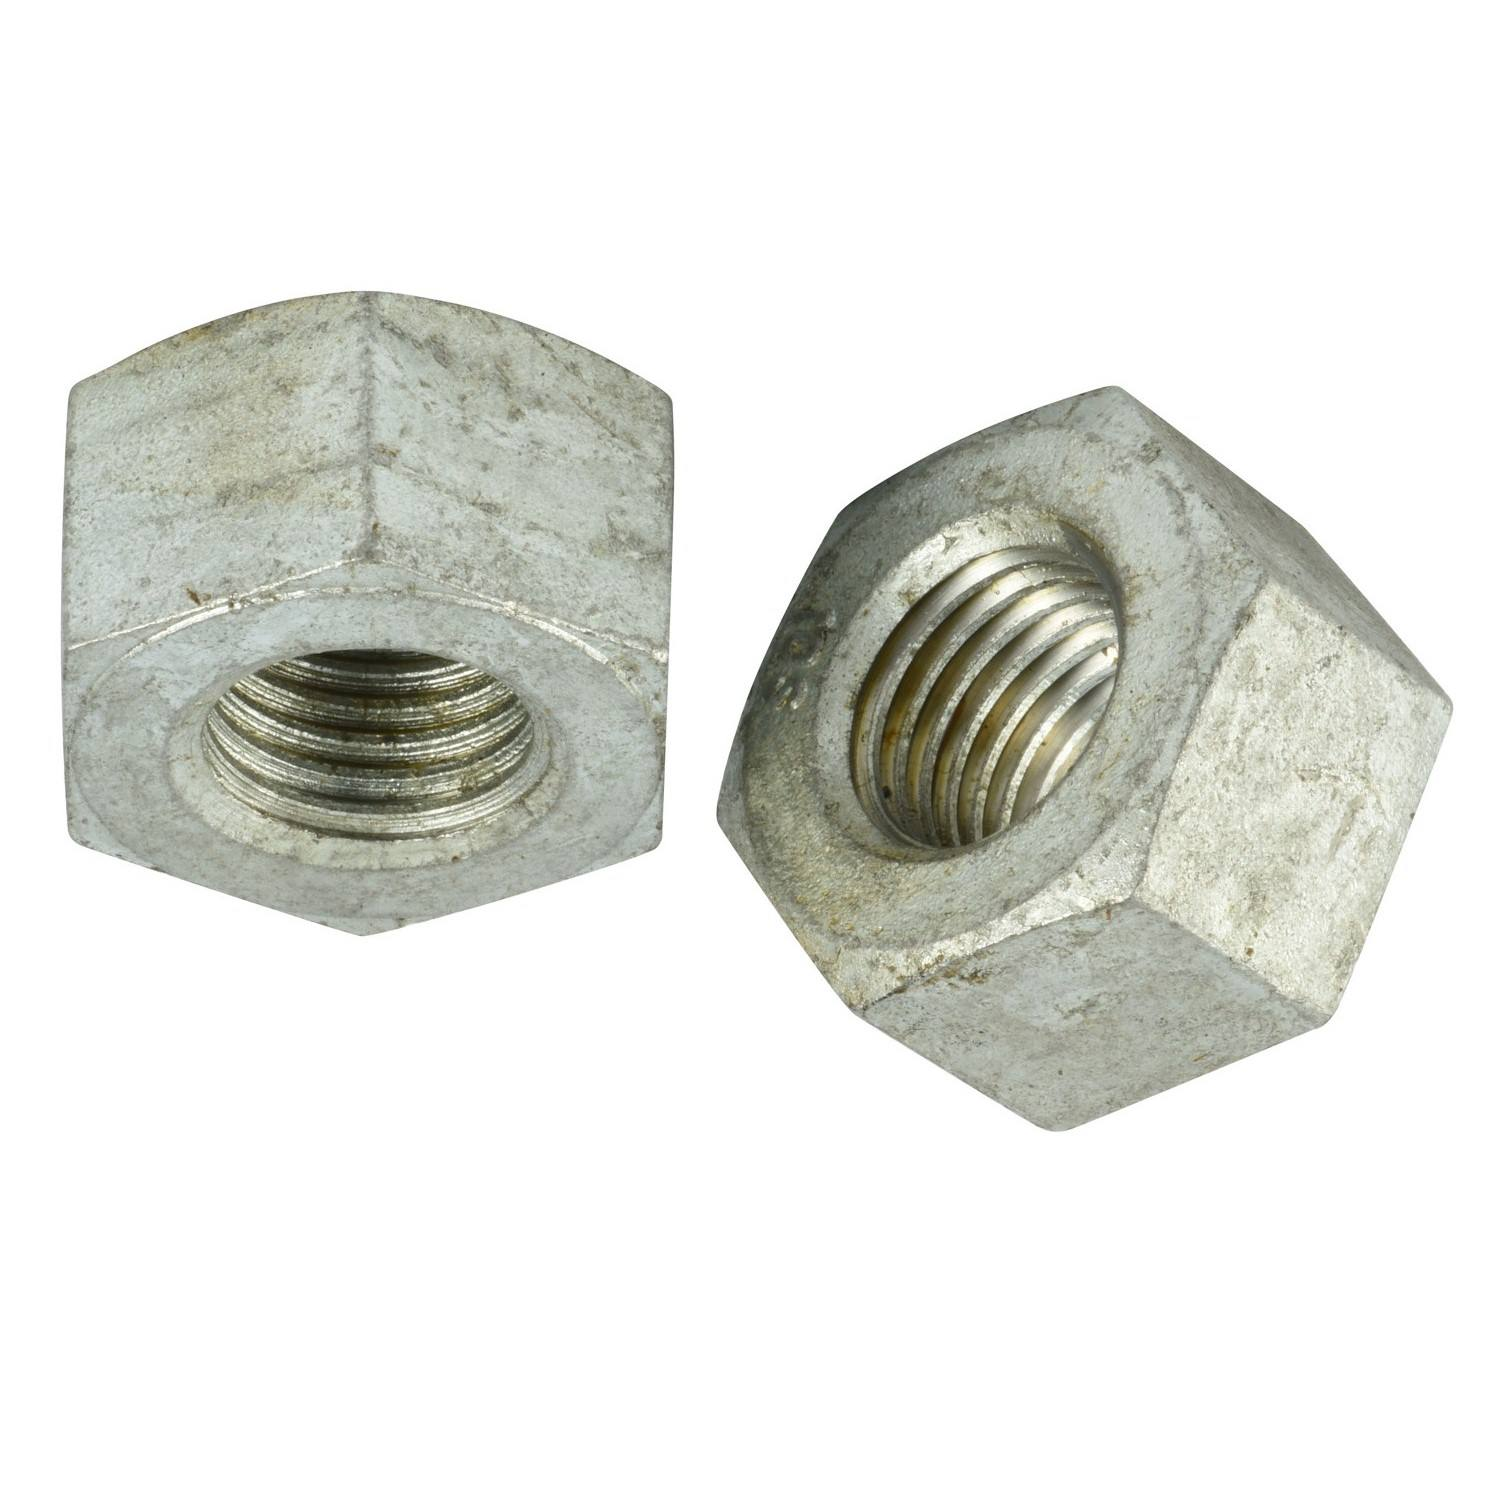 A563M Heavy hex nut